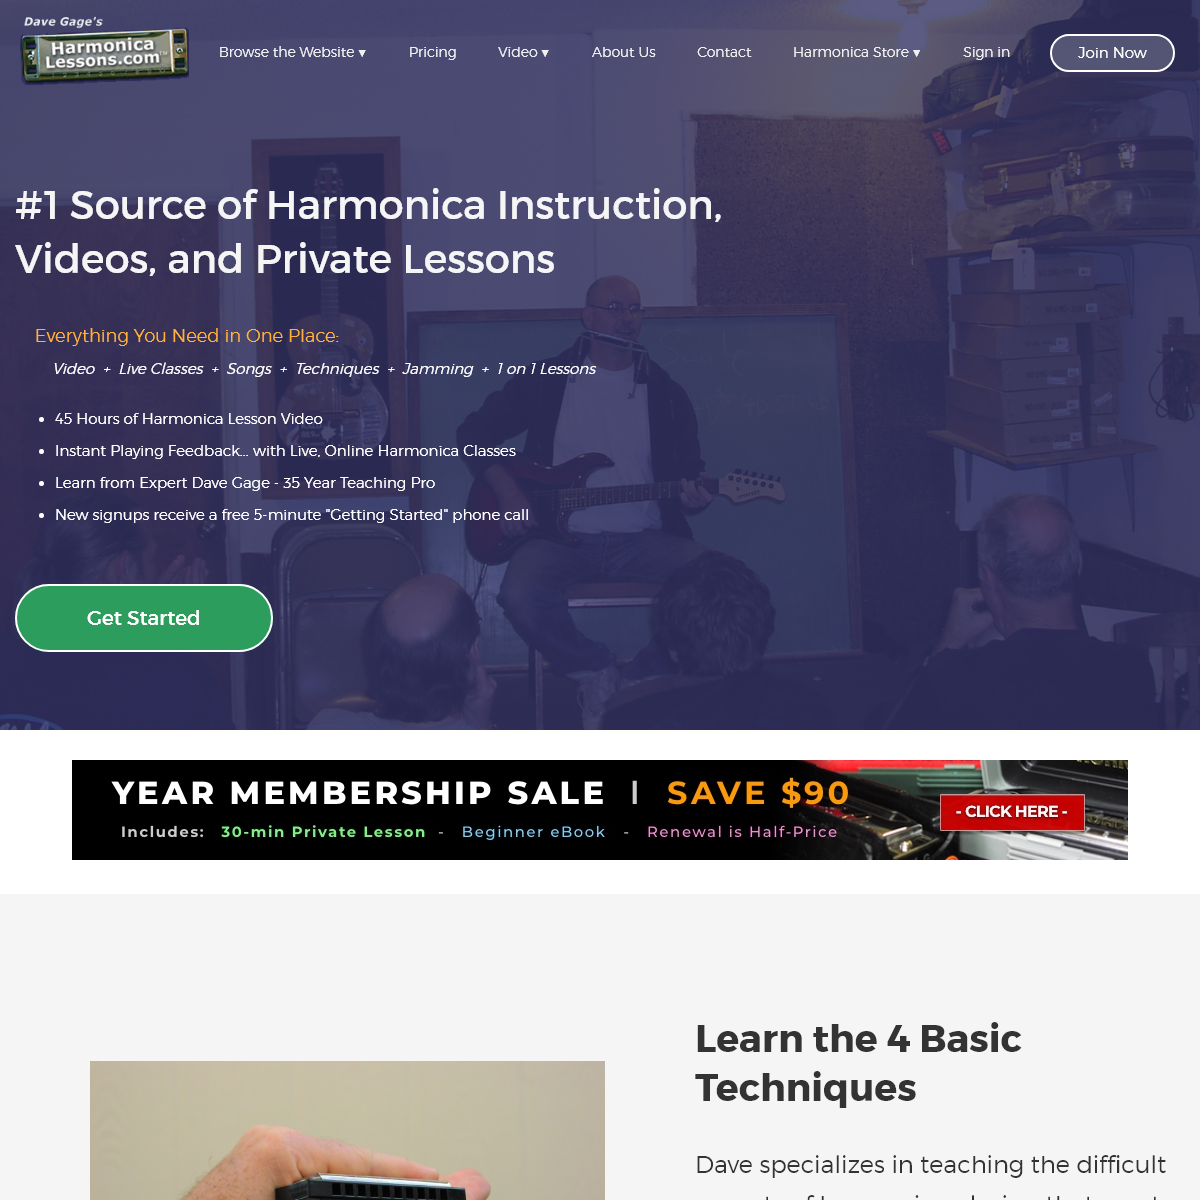 Harmonica Lessons [Official Site] - Absolute Beginners, Intermediate to Advanced Harmonica Video Tutorials - Best Online Harmoni